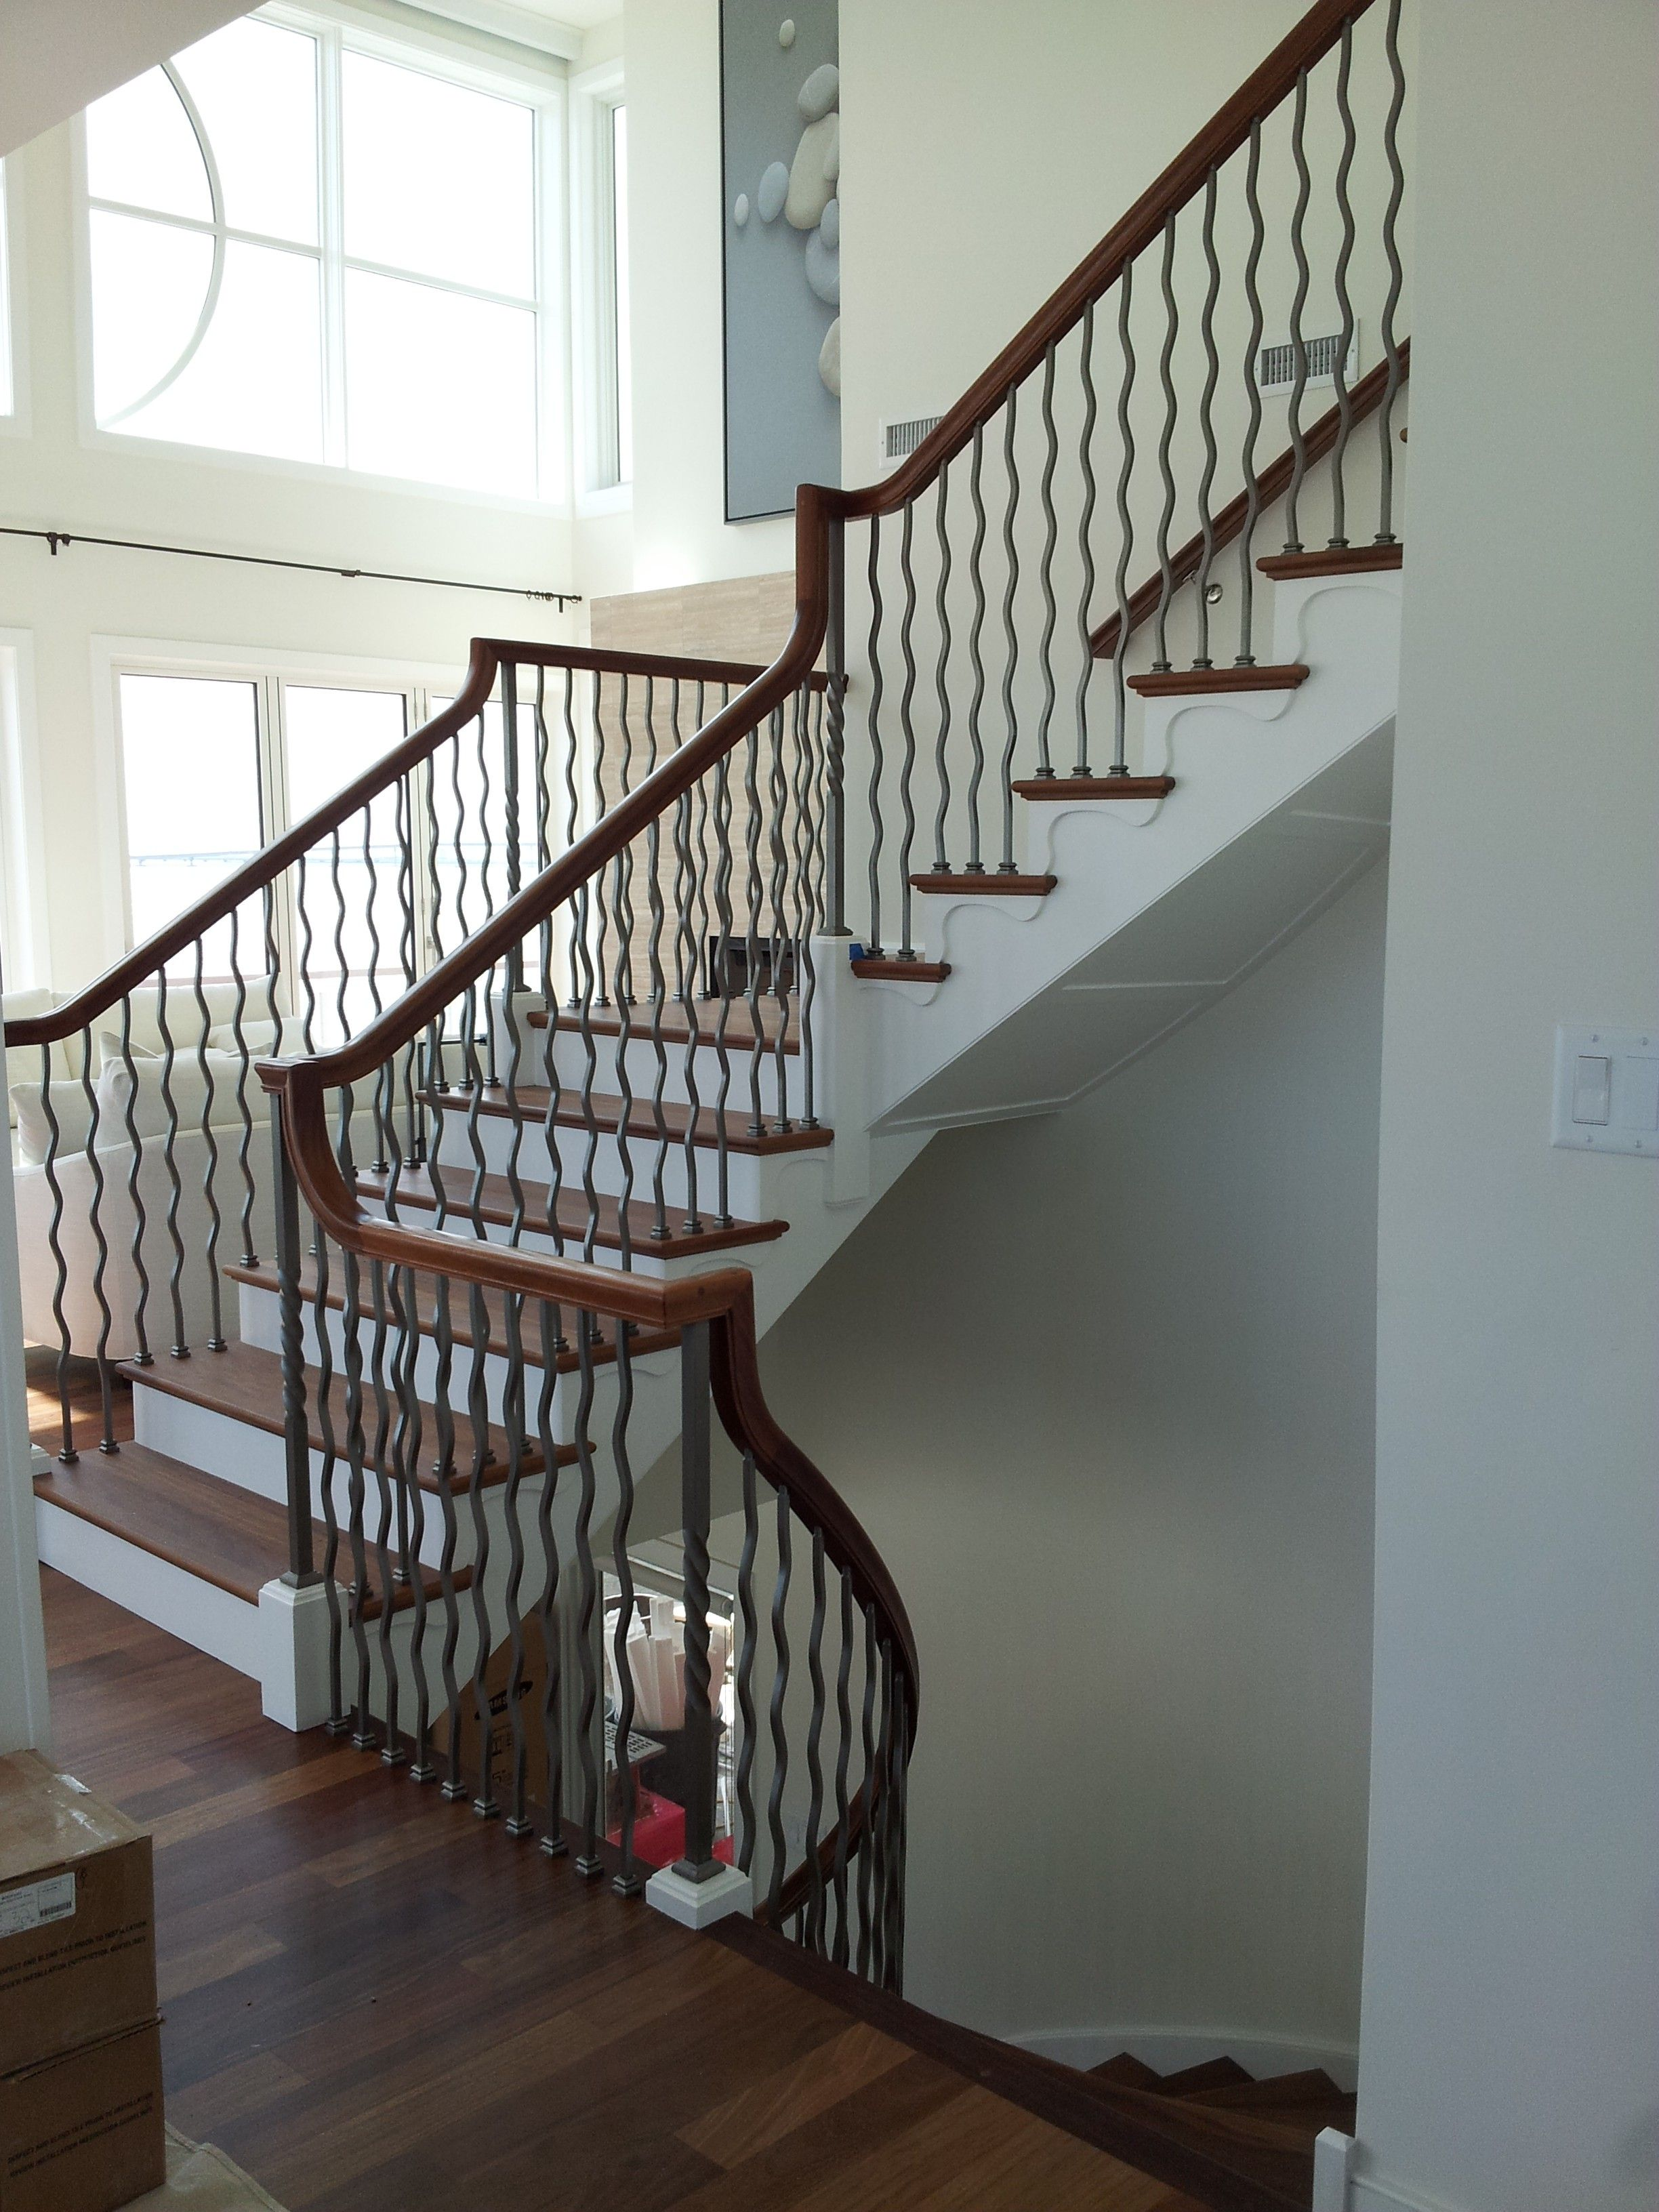 Our Wave Balusters in Warm Nickel, for the perfect rustic modern look.